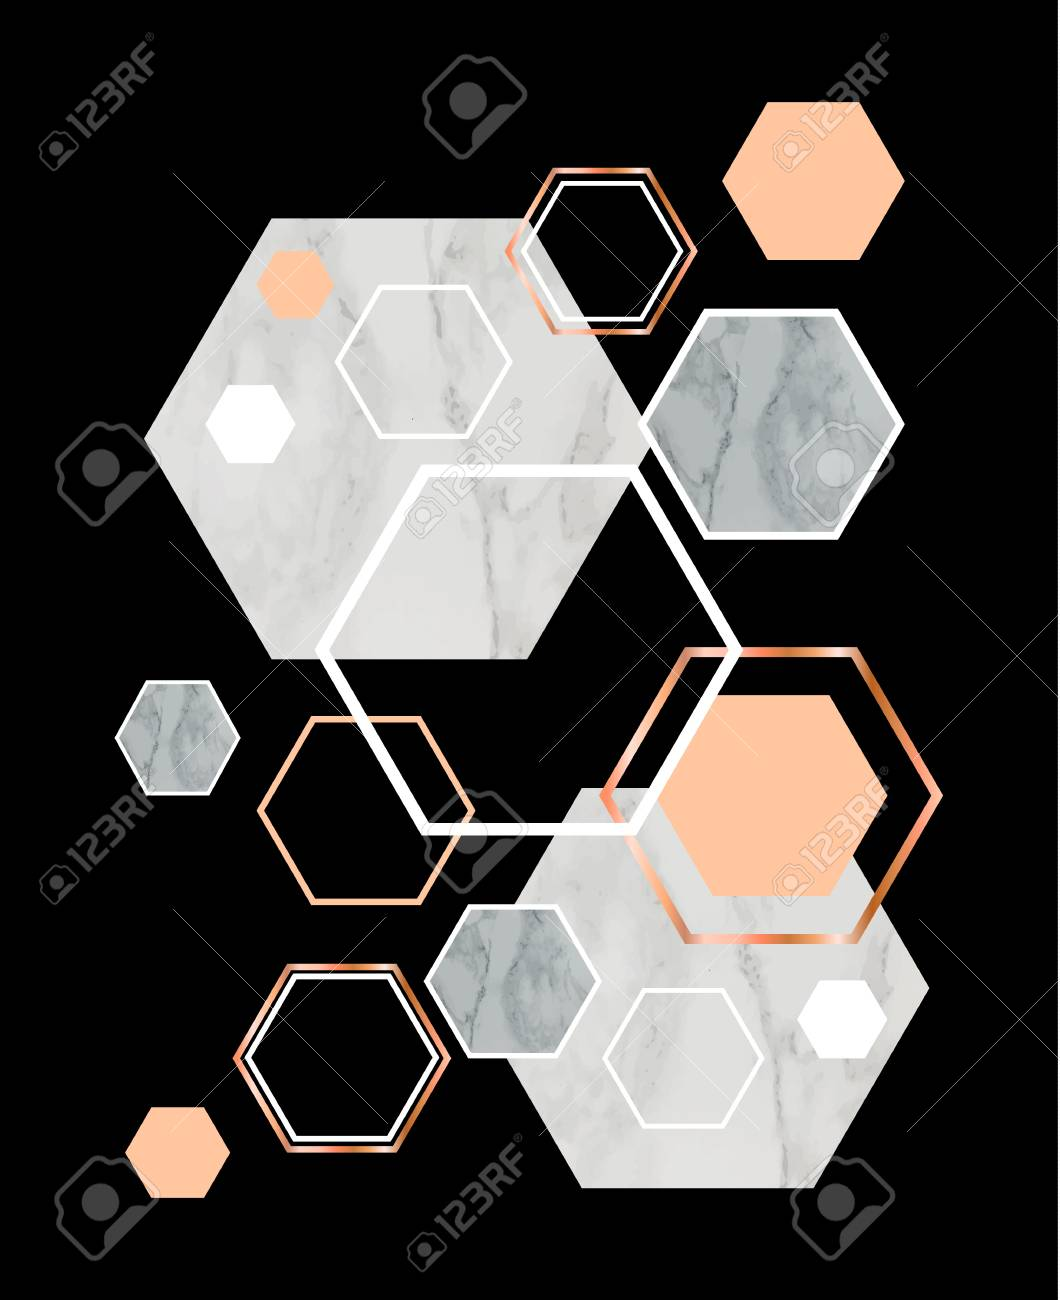 Black Background With Marble Rose Gold Hexagons Geometric Print